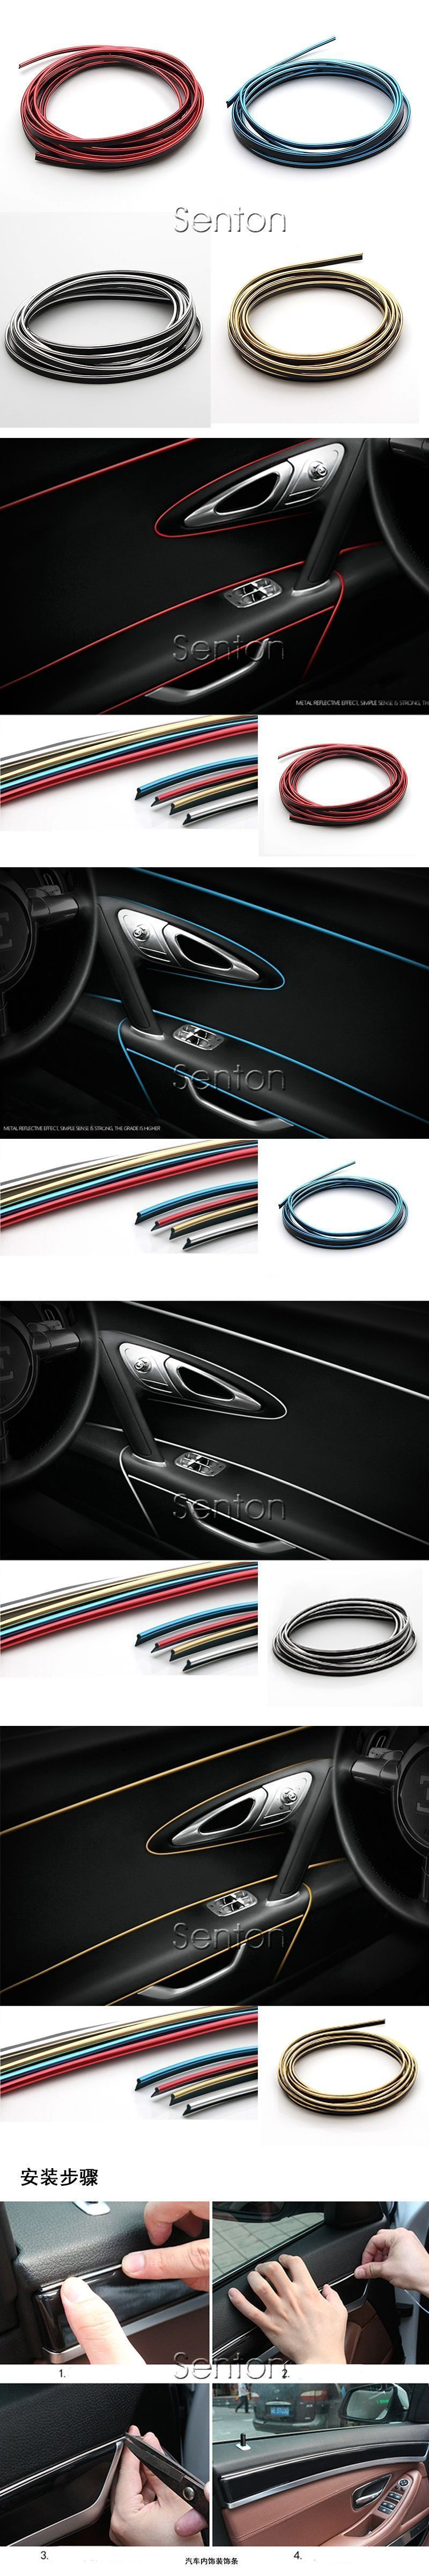 Car dashboard accessories toys  M CarStyling Interior Decoration Stickers For Fiat Punto Stilo